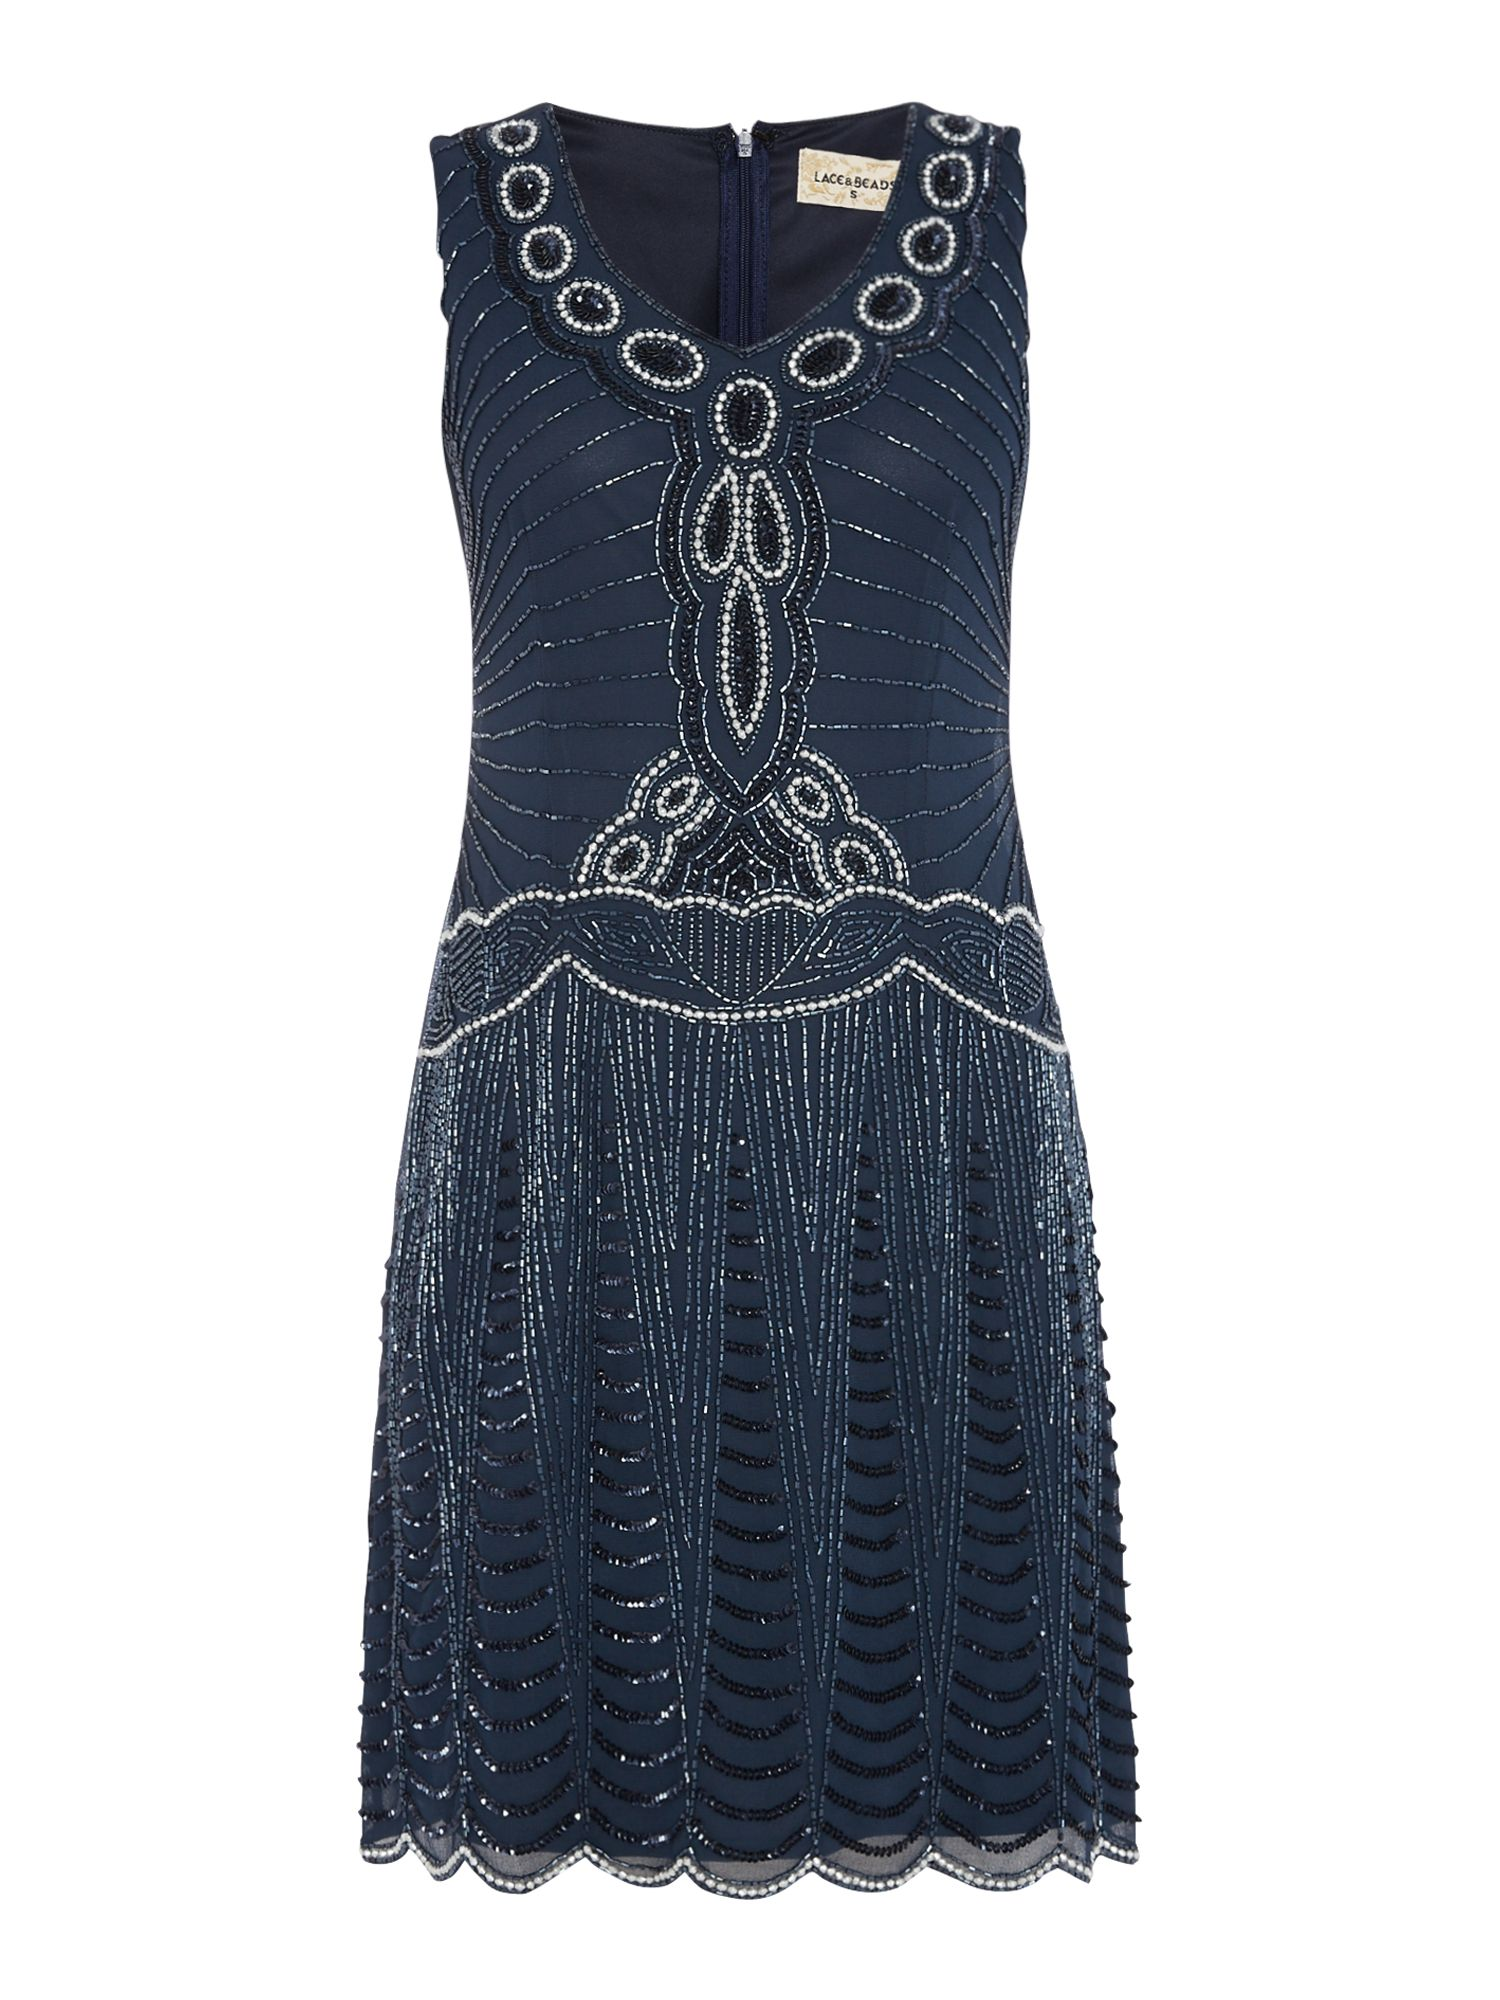 Lace and Beads Short Sleeve Embellished Drop Waist Dress Navy £65.00 AT vintagedancer.com